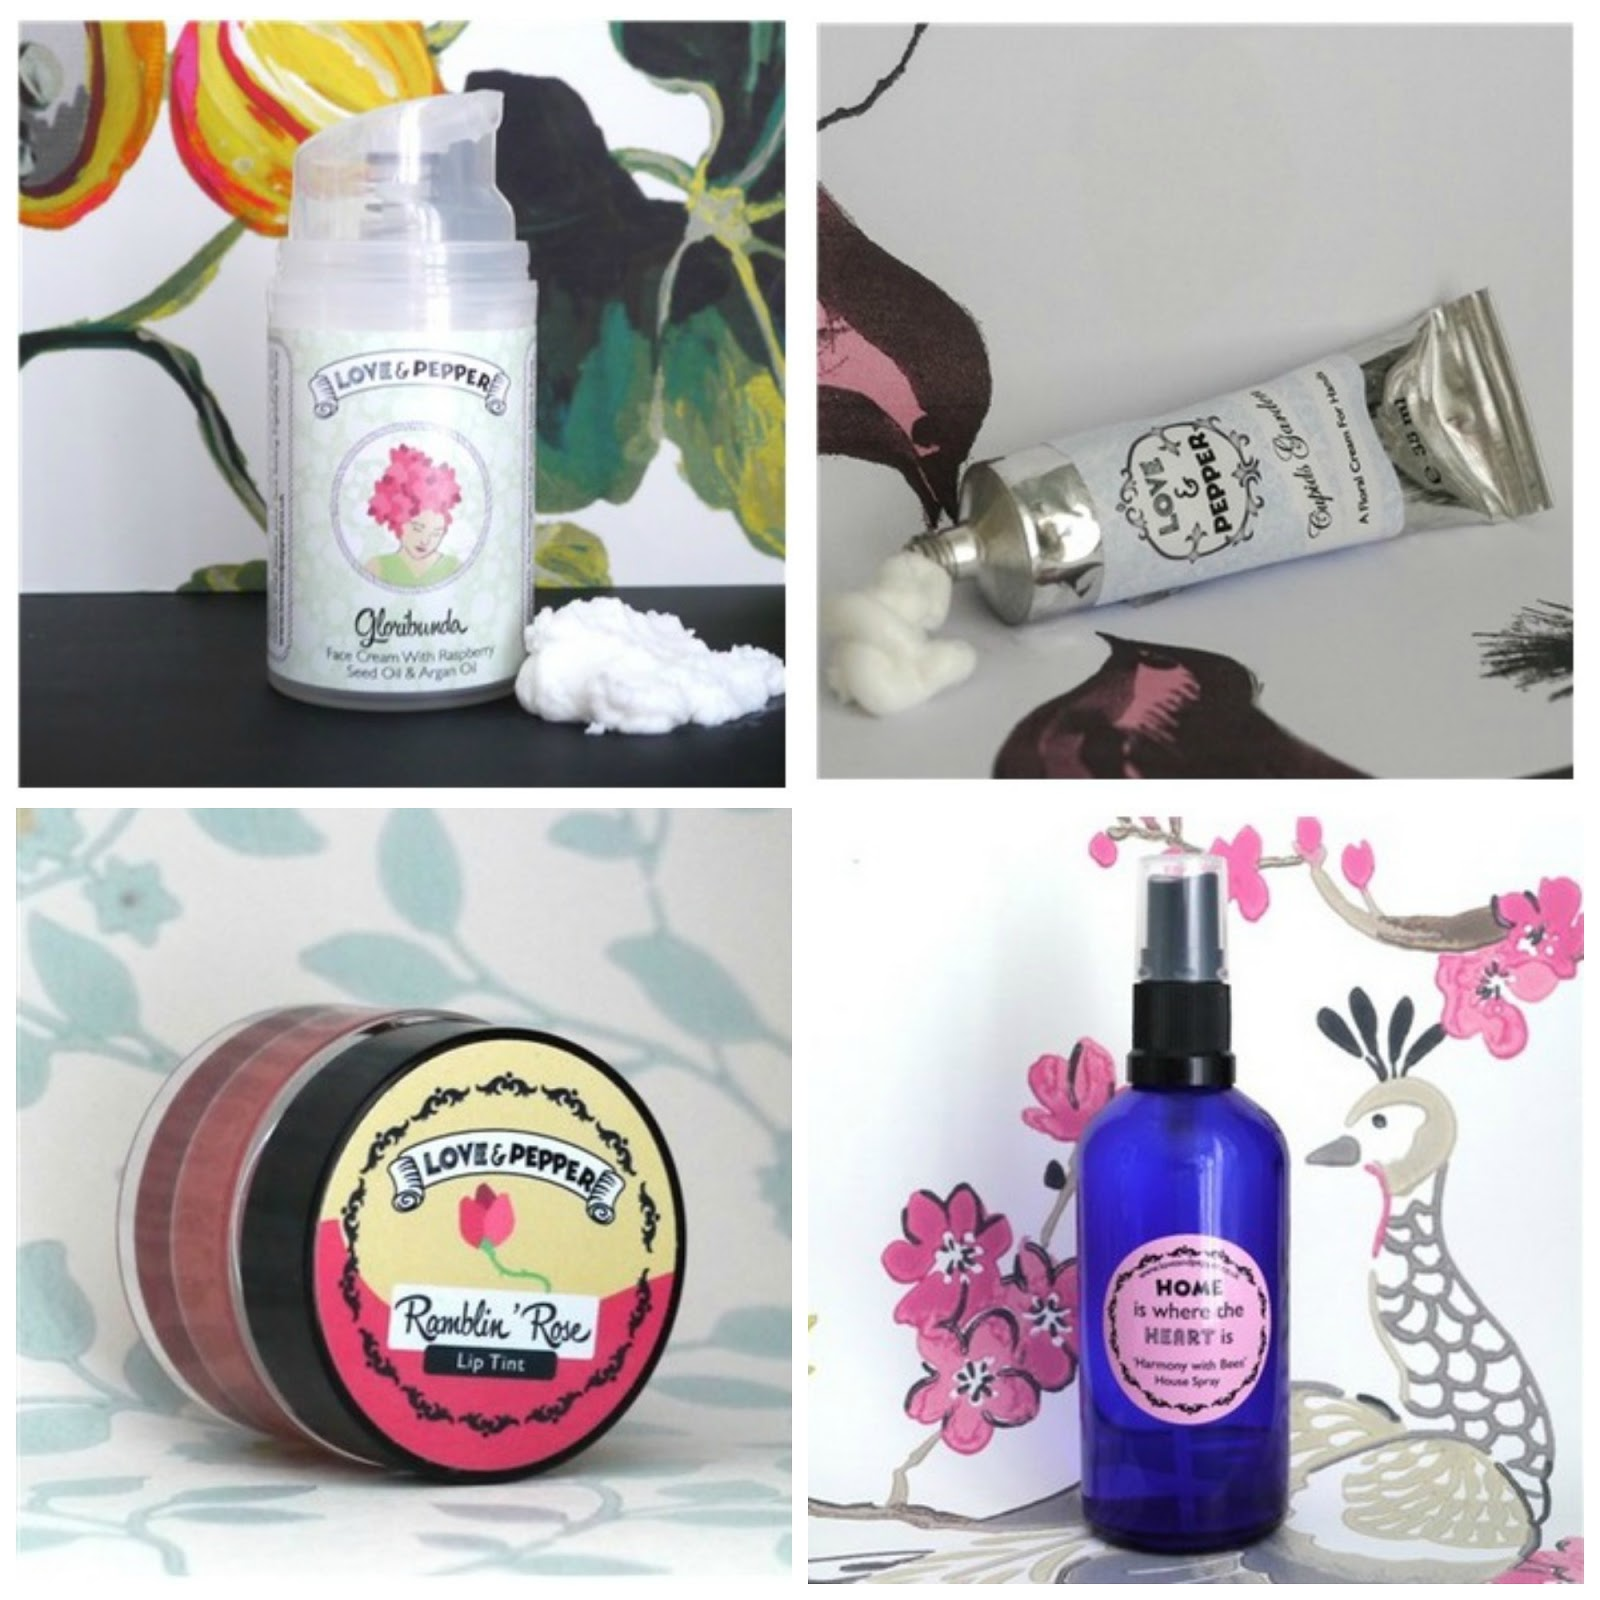 Introduction - Love & Pepper Skincare